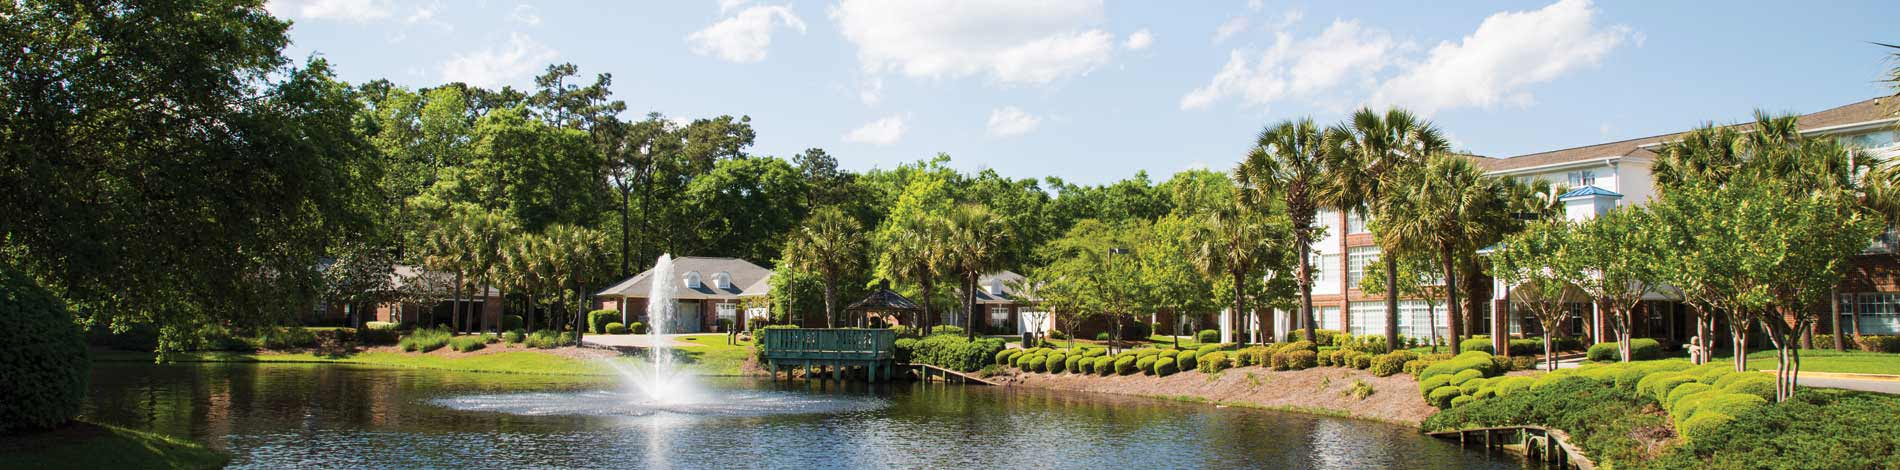 About Lakes at Litchfield Retirement Community